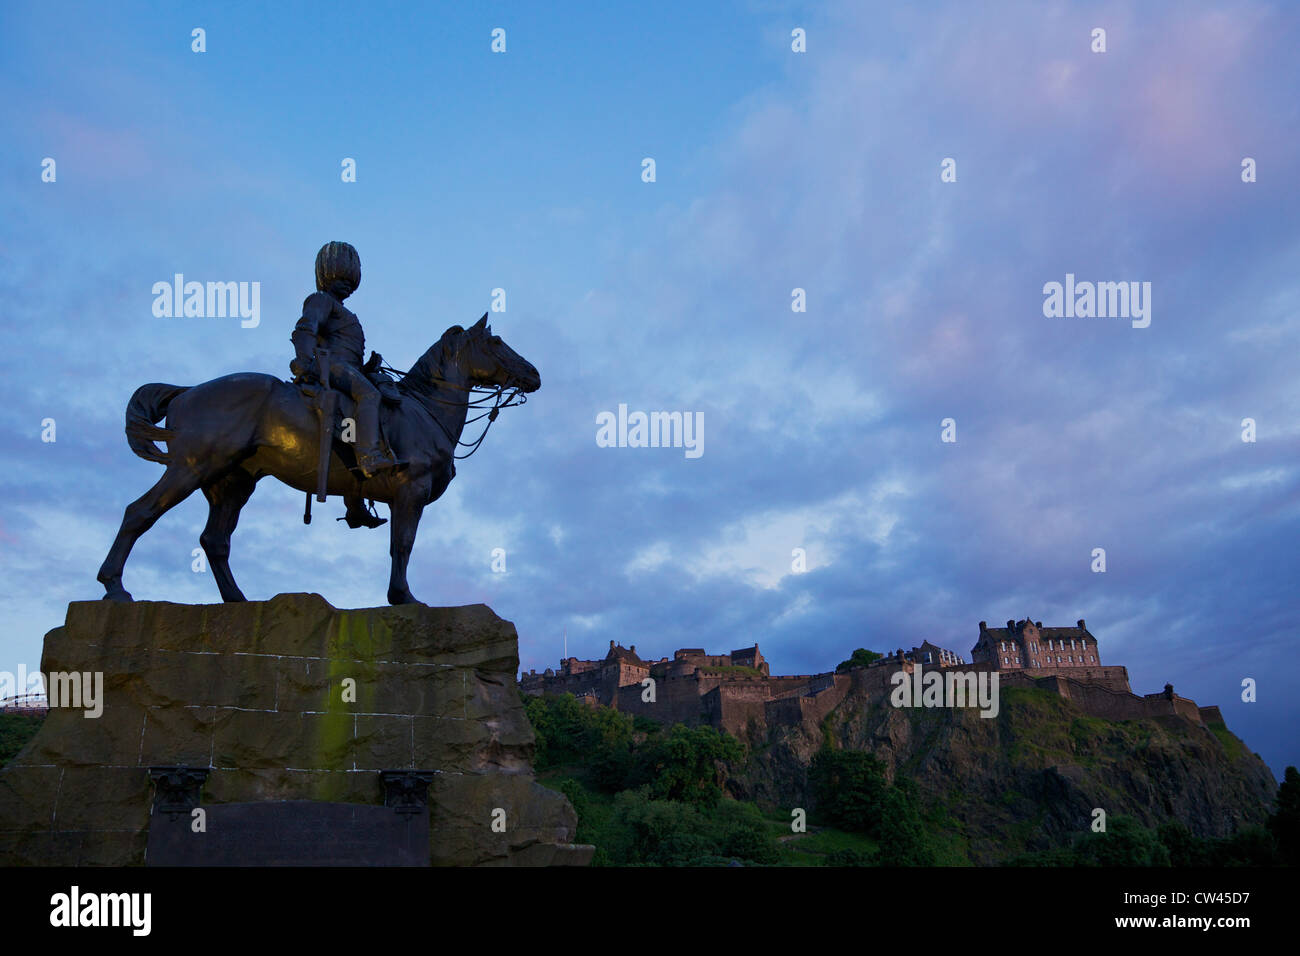 Royal Scots Greys Boer War memorial equestrian statue, in Princes Street, with the castle behind, Edinburgh, Scotland, - Stock Image